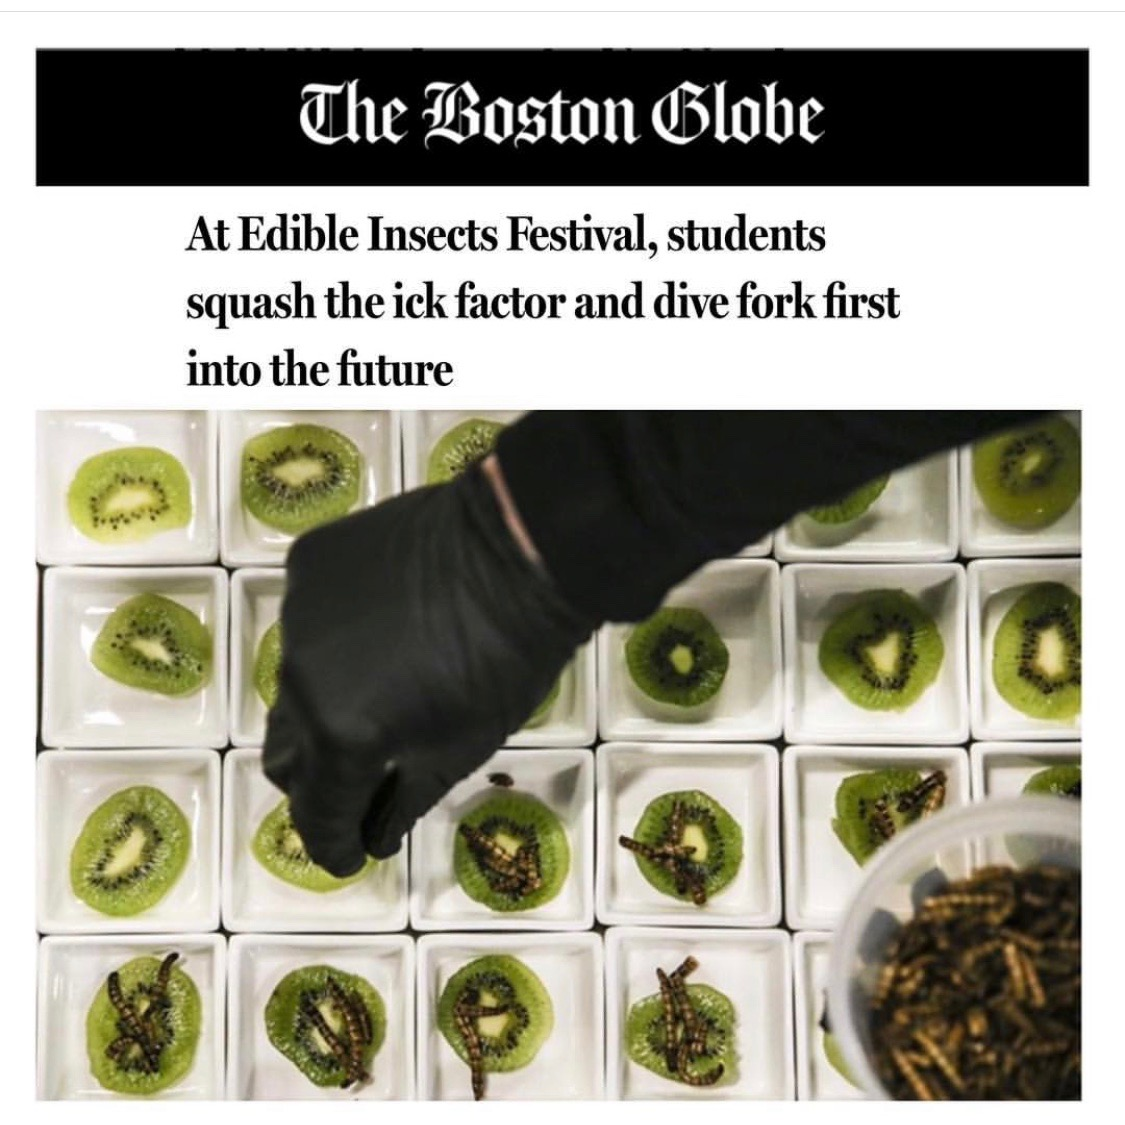 https://www.bostonglobe.com/lifestyle/food-dining/2019/04/22/edible-insects-festival-students-squash-ick-factor-and-dive-fork-first-into-future/hBgM70vXMD0YZOUVt47hPO/story.html